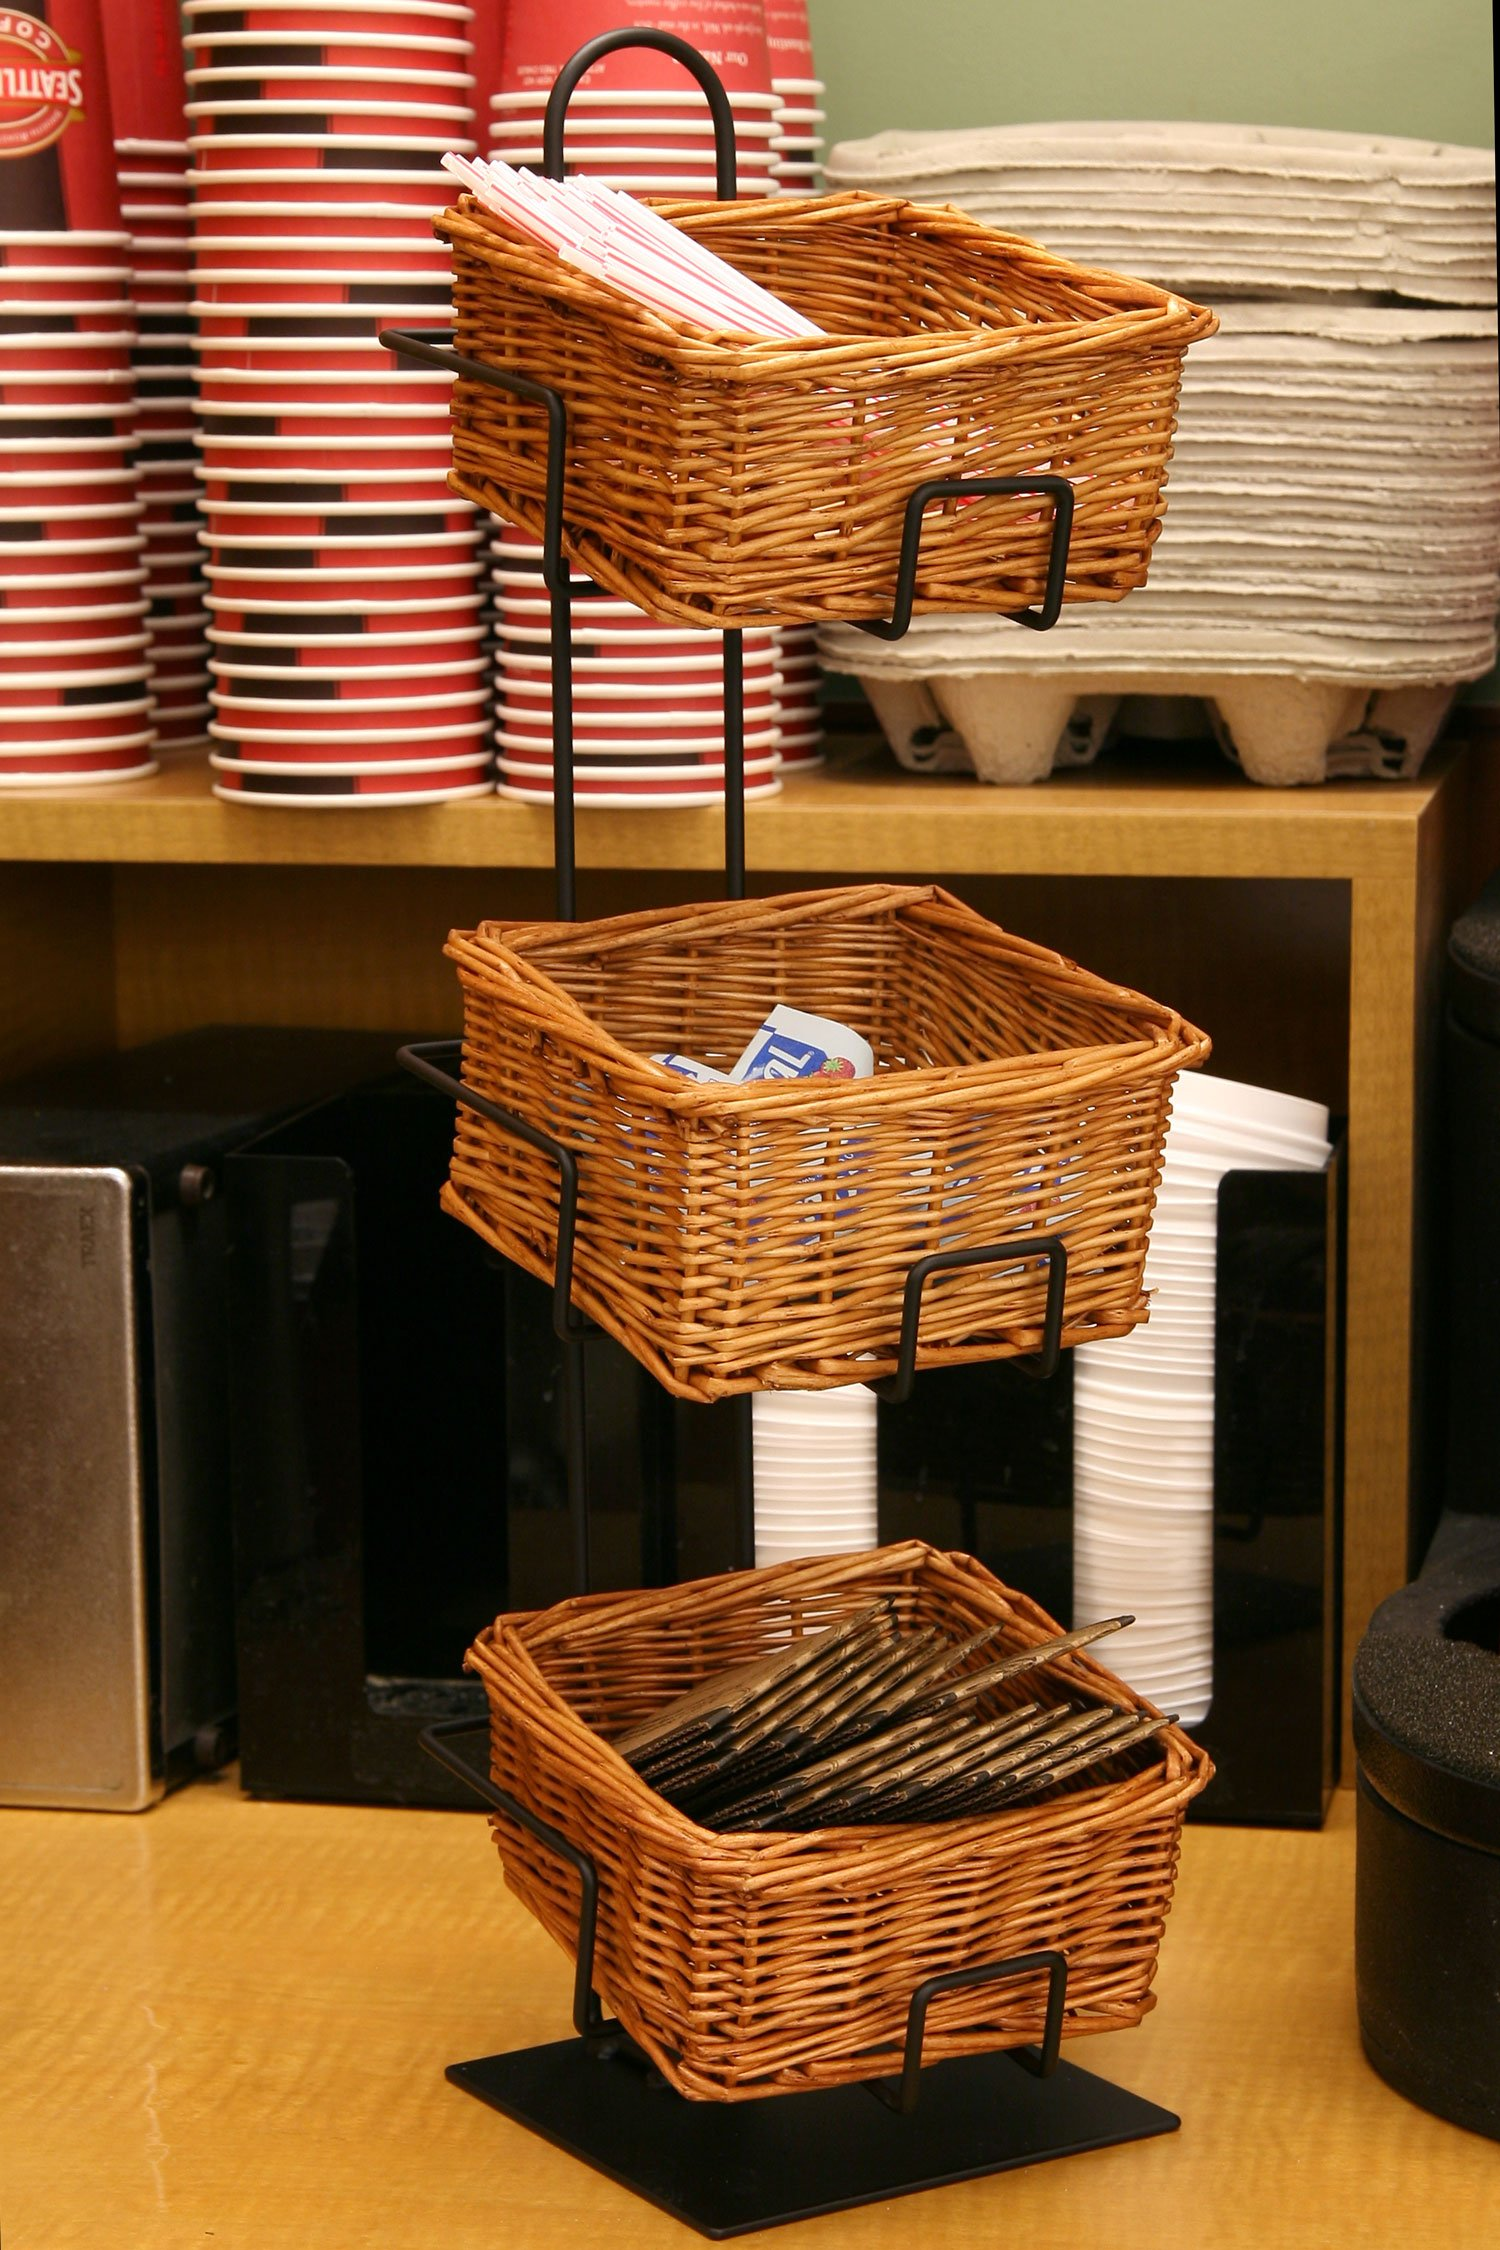 3-Tier 3 Rectangular Willow Basket Counter Display Rack by Mobile Merchandisers (Image #2)